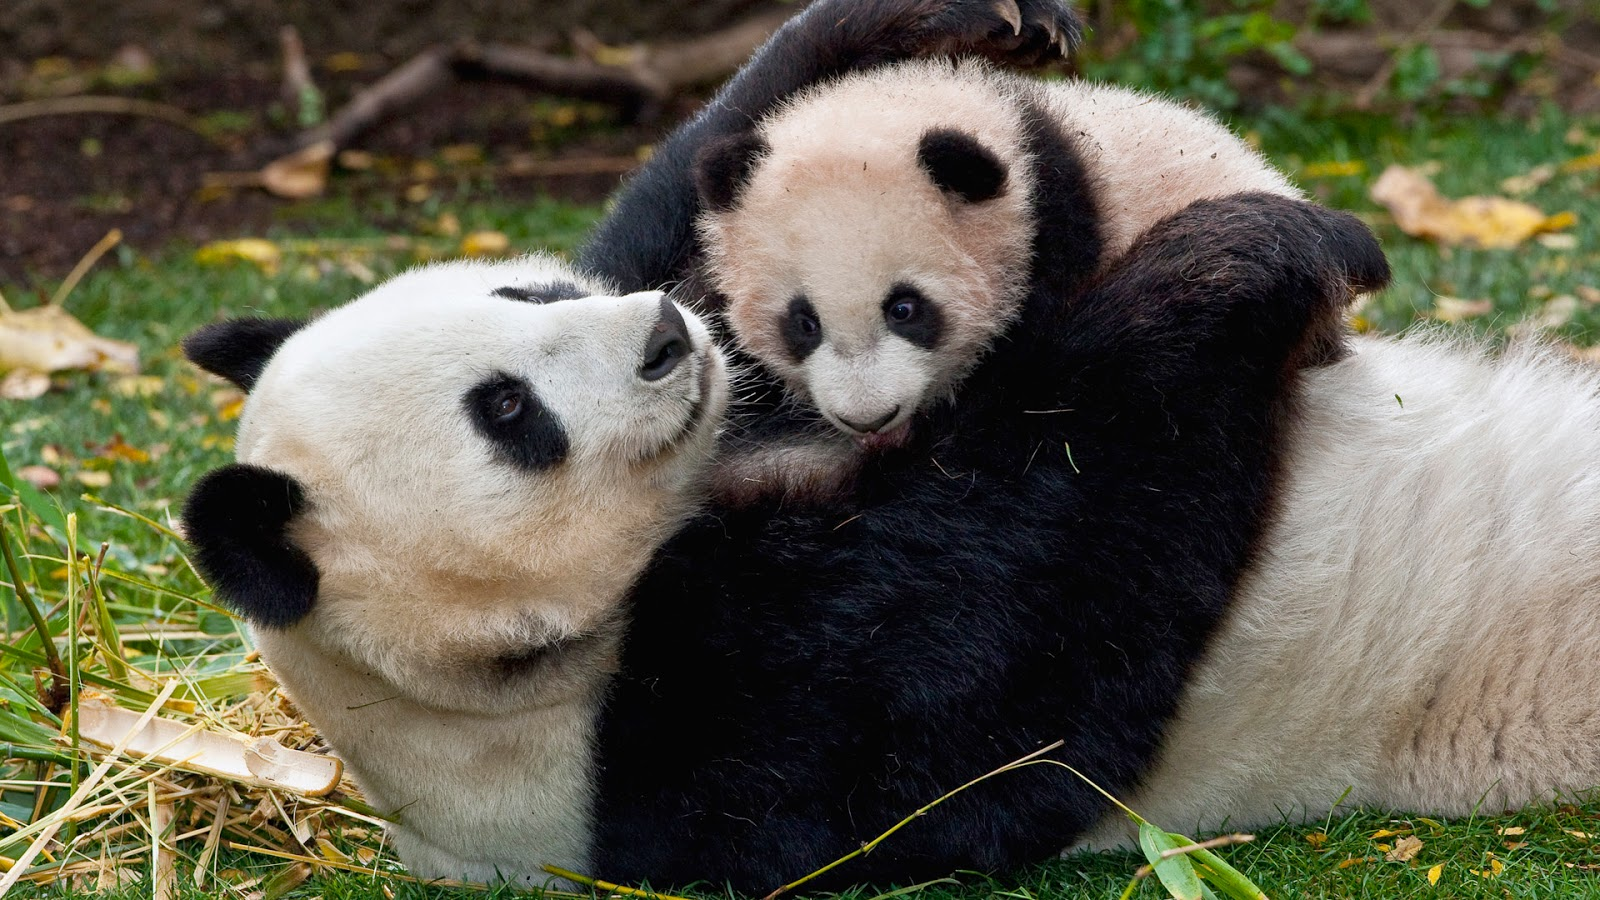 Panda mom puts to sleep son